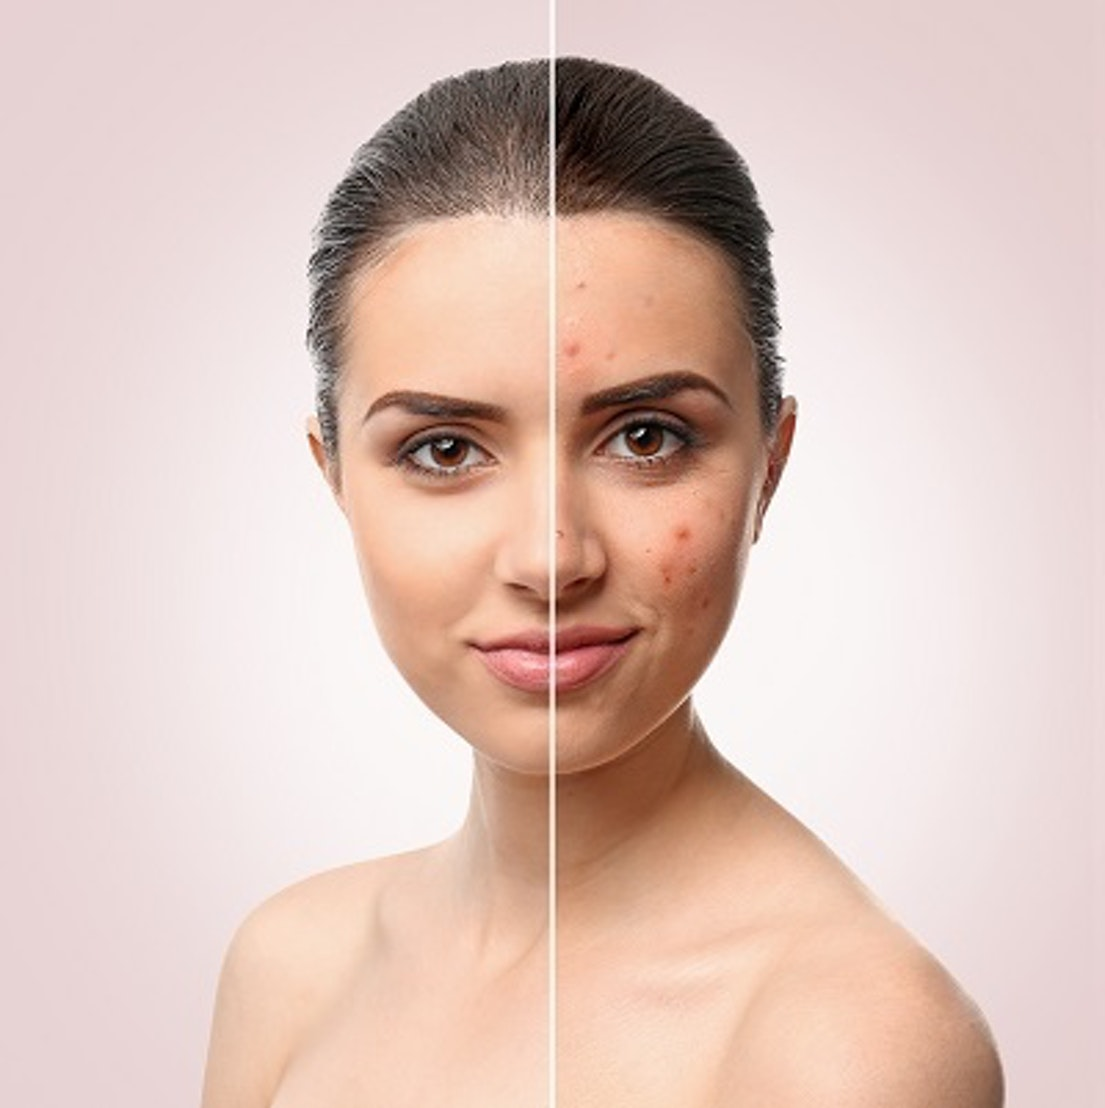 Woman with adult acne 3 Steps To Prevent Adult Acne